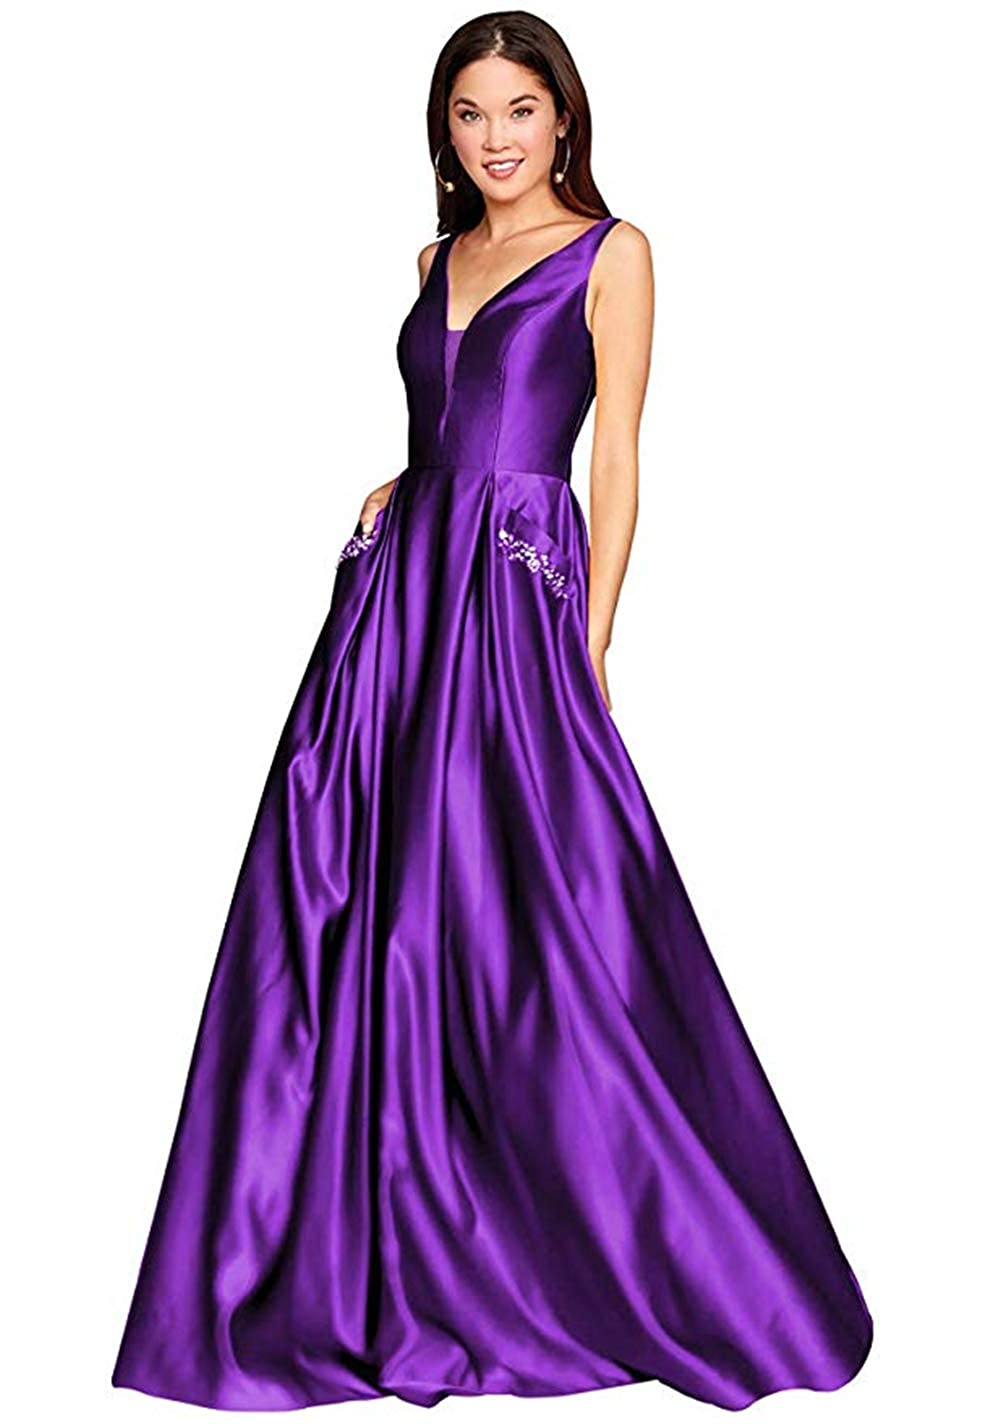 01lavender PROMNOVAS Women's V Neck Backless Beaded Satin Prom Dress Long Formal Evening Gown with Pockets